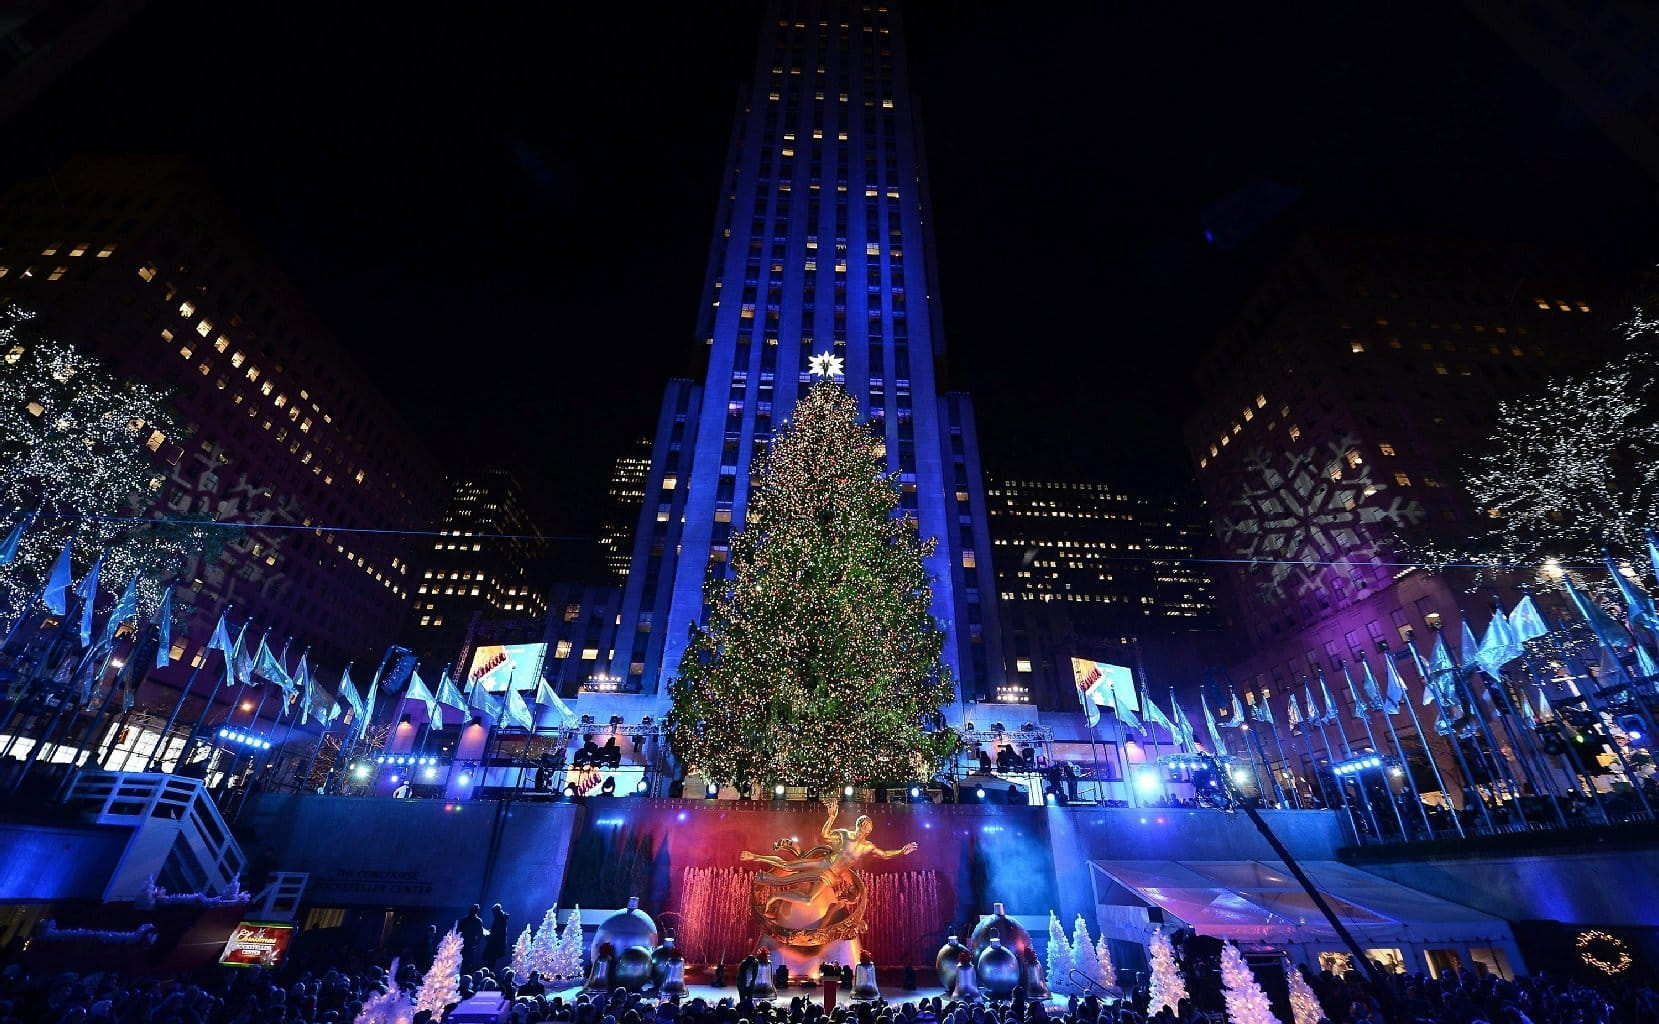 Christbaum am rockefeller center ein deutscher stern in Ruta de la navidad 2016